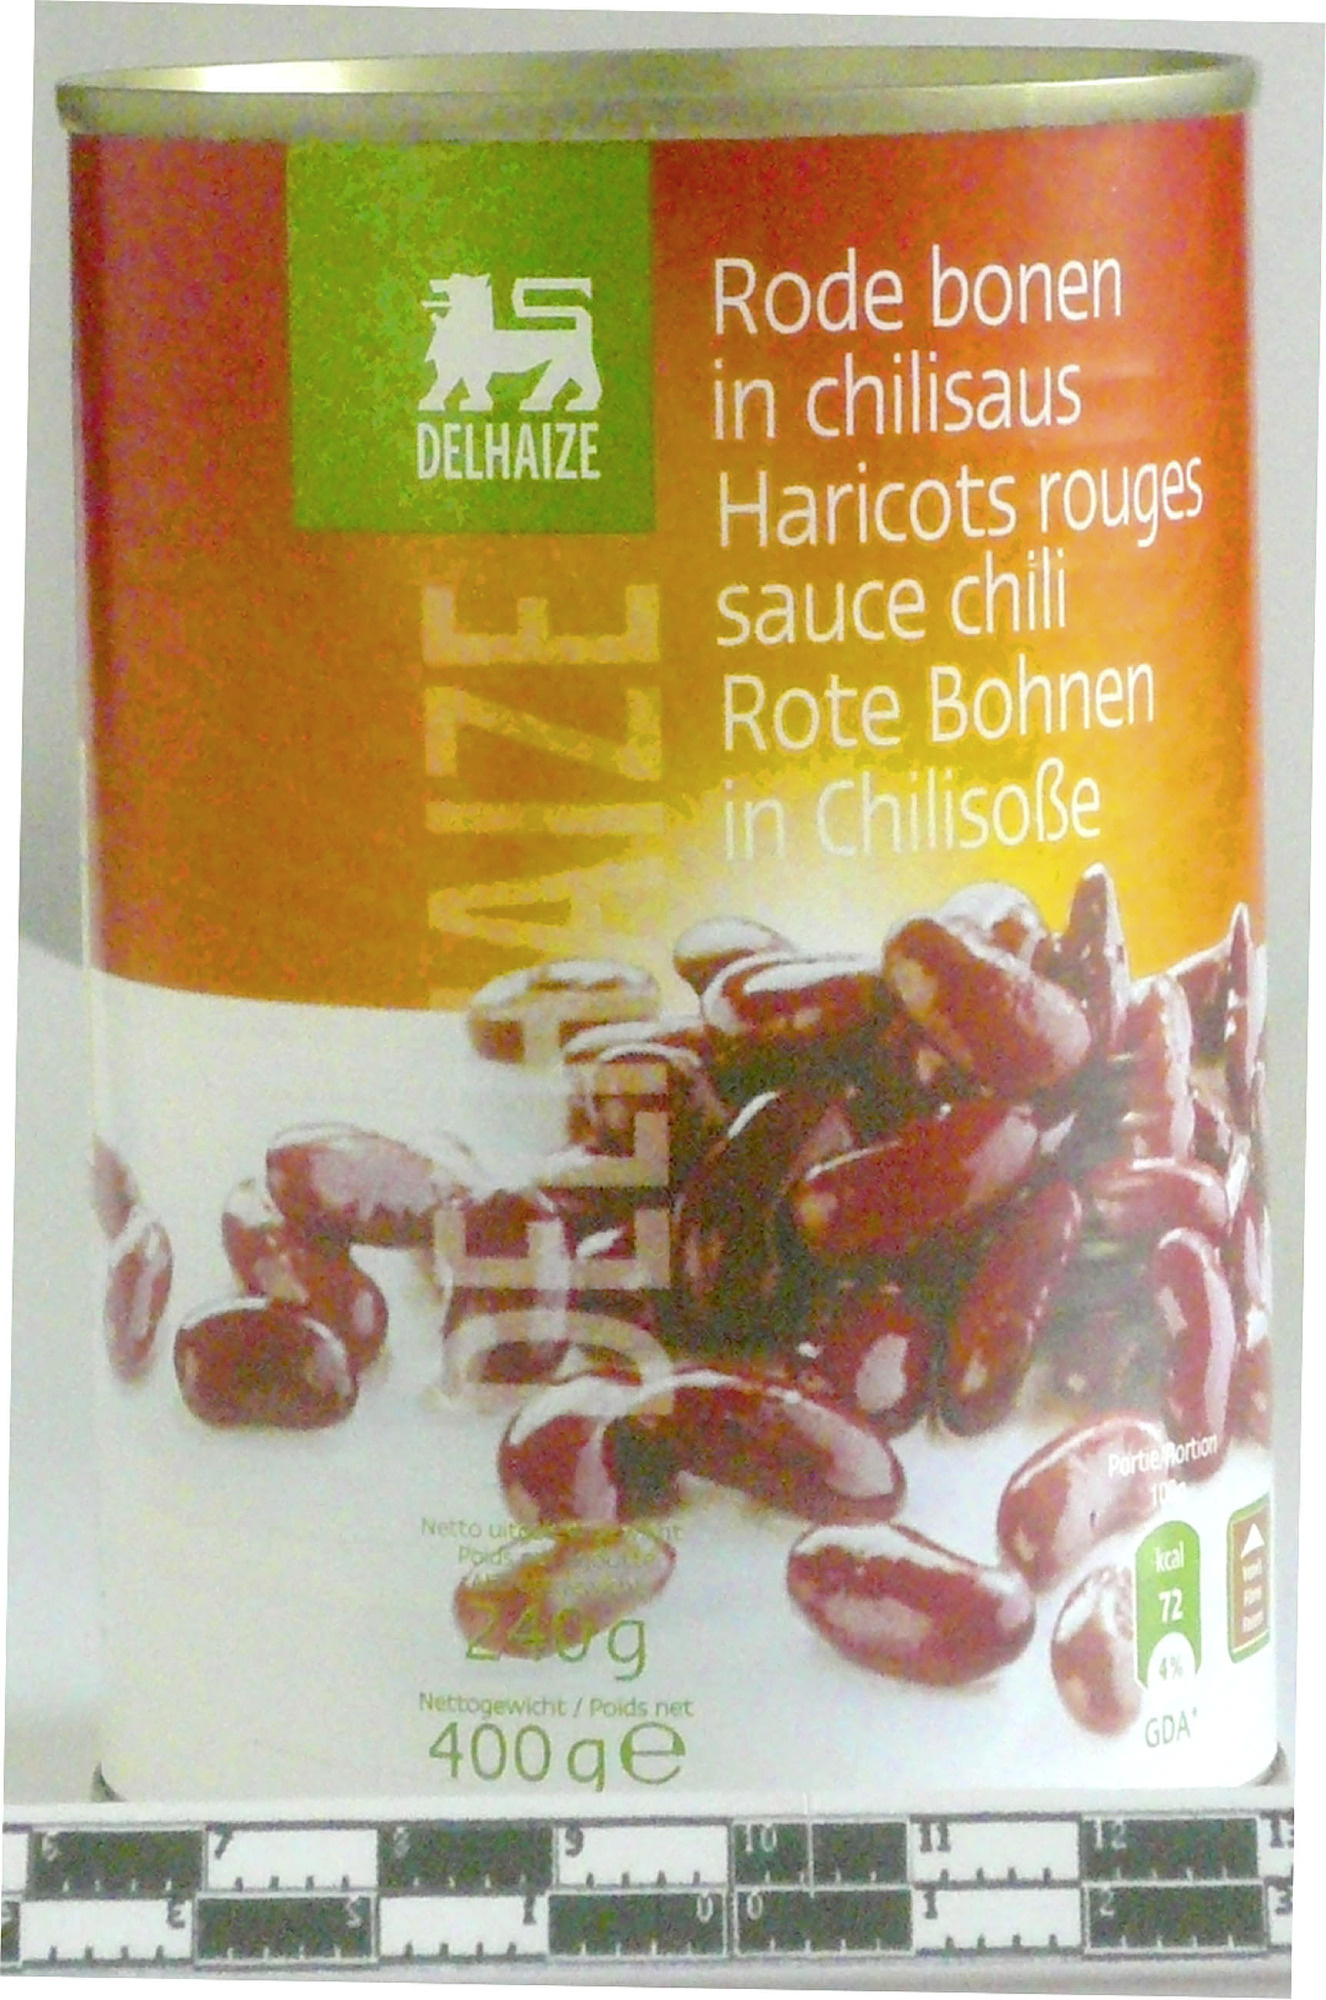 Haricots rouges sauce chili - Product